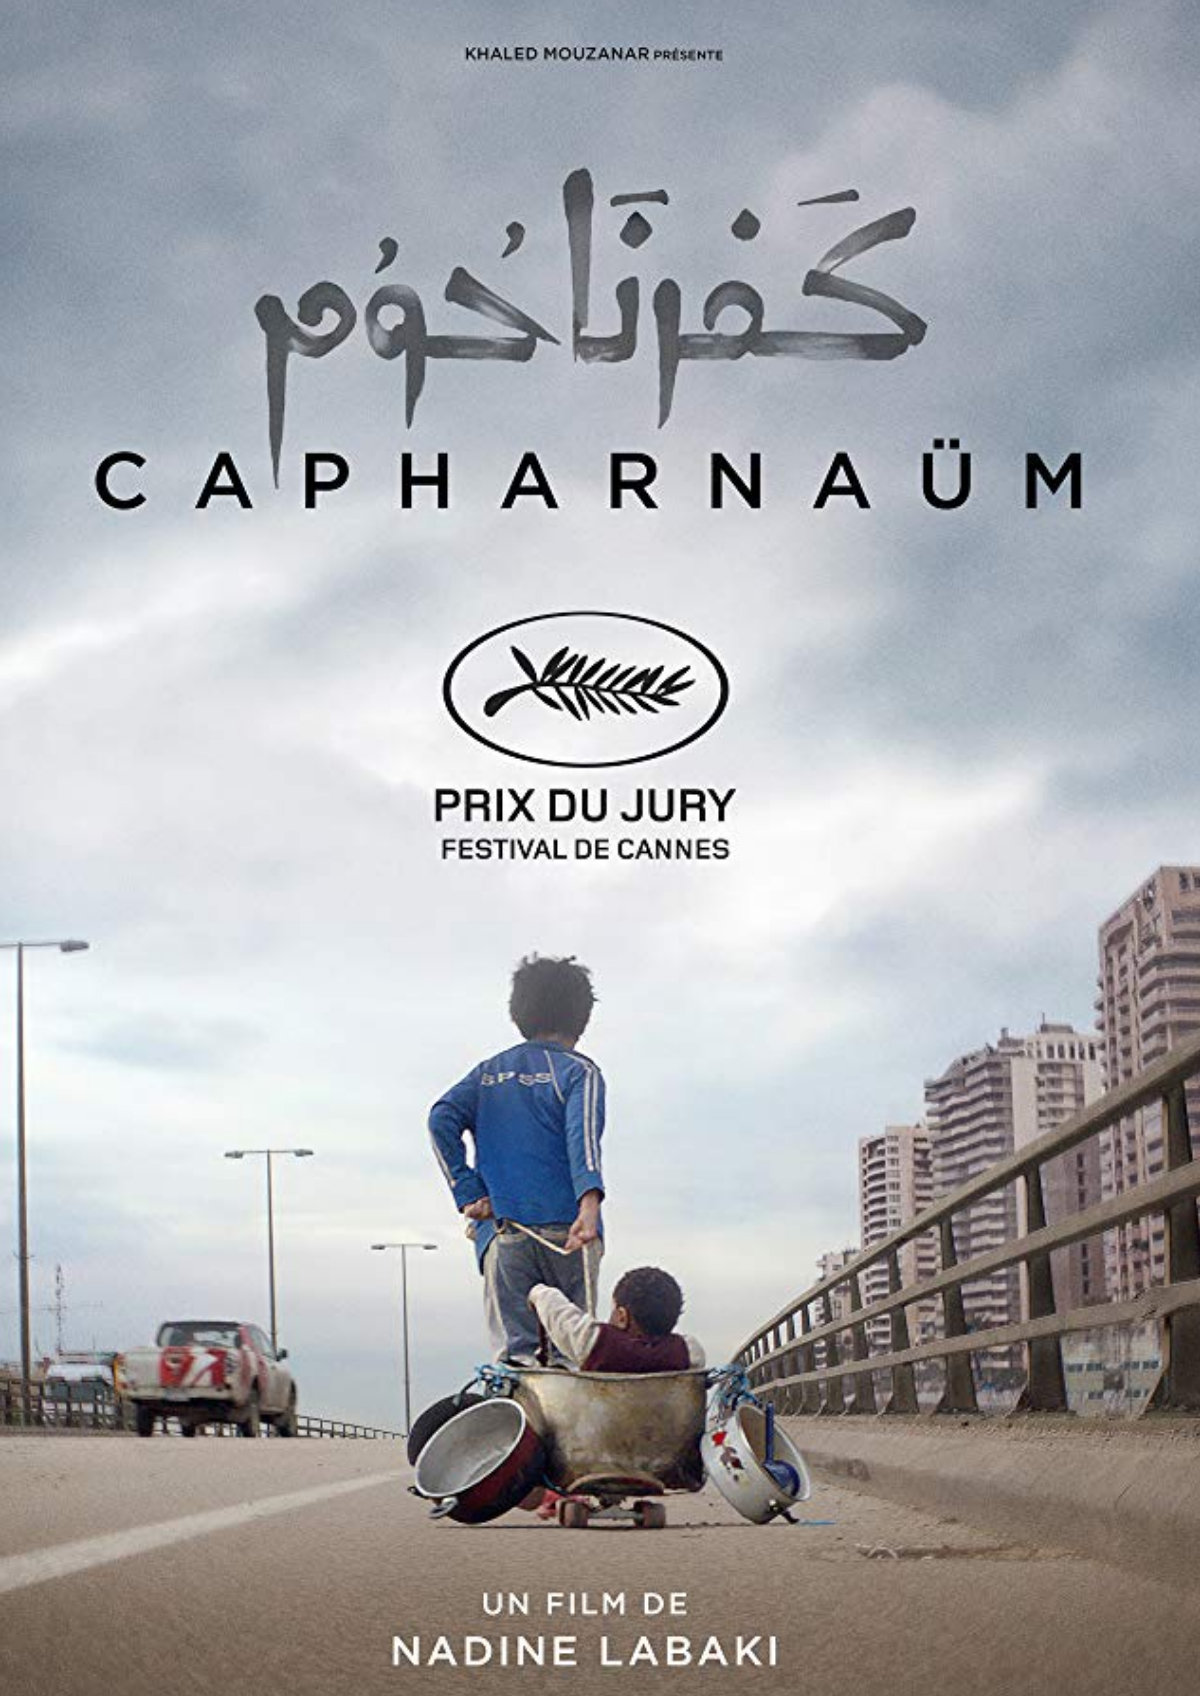 'Capernaum' movie poster